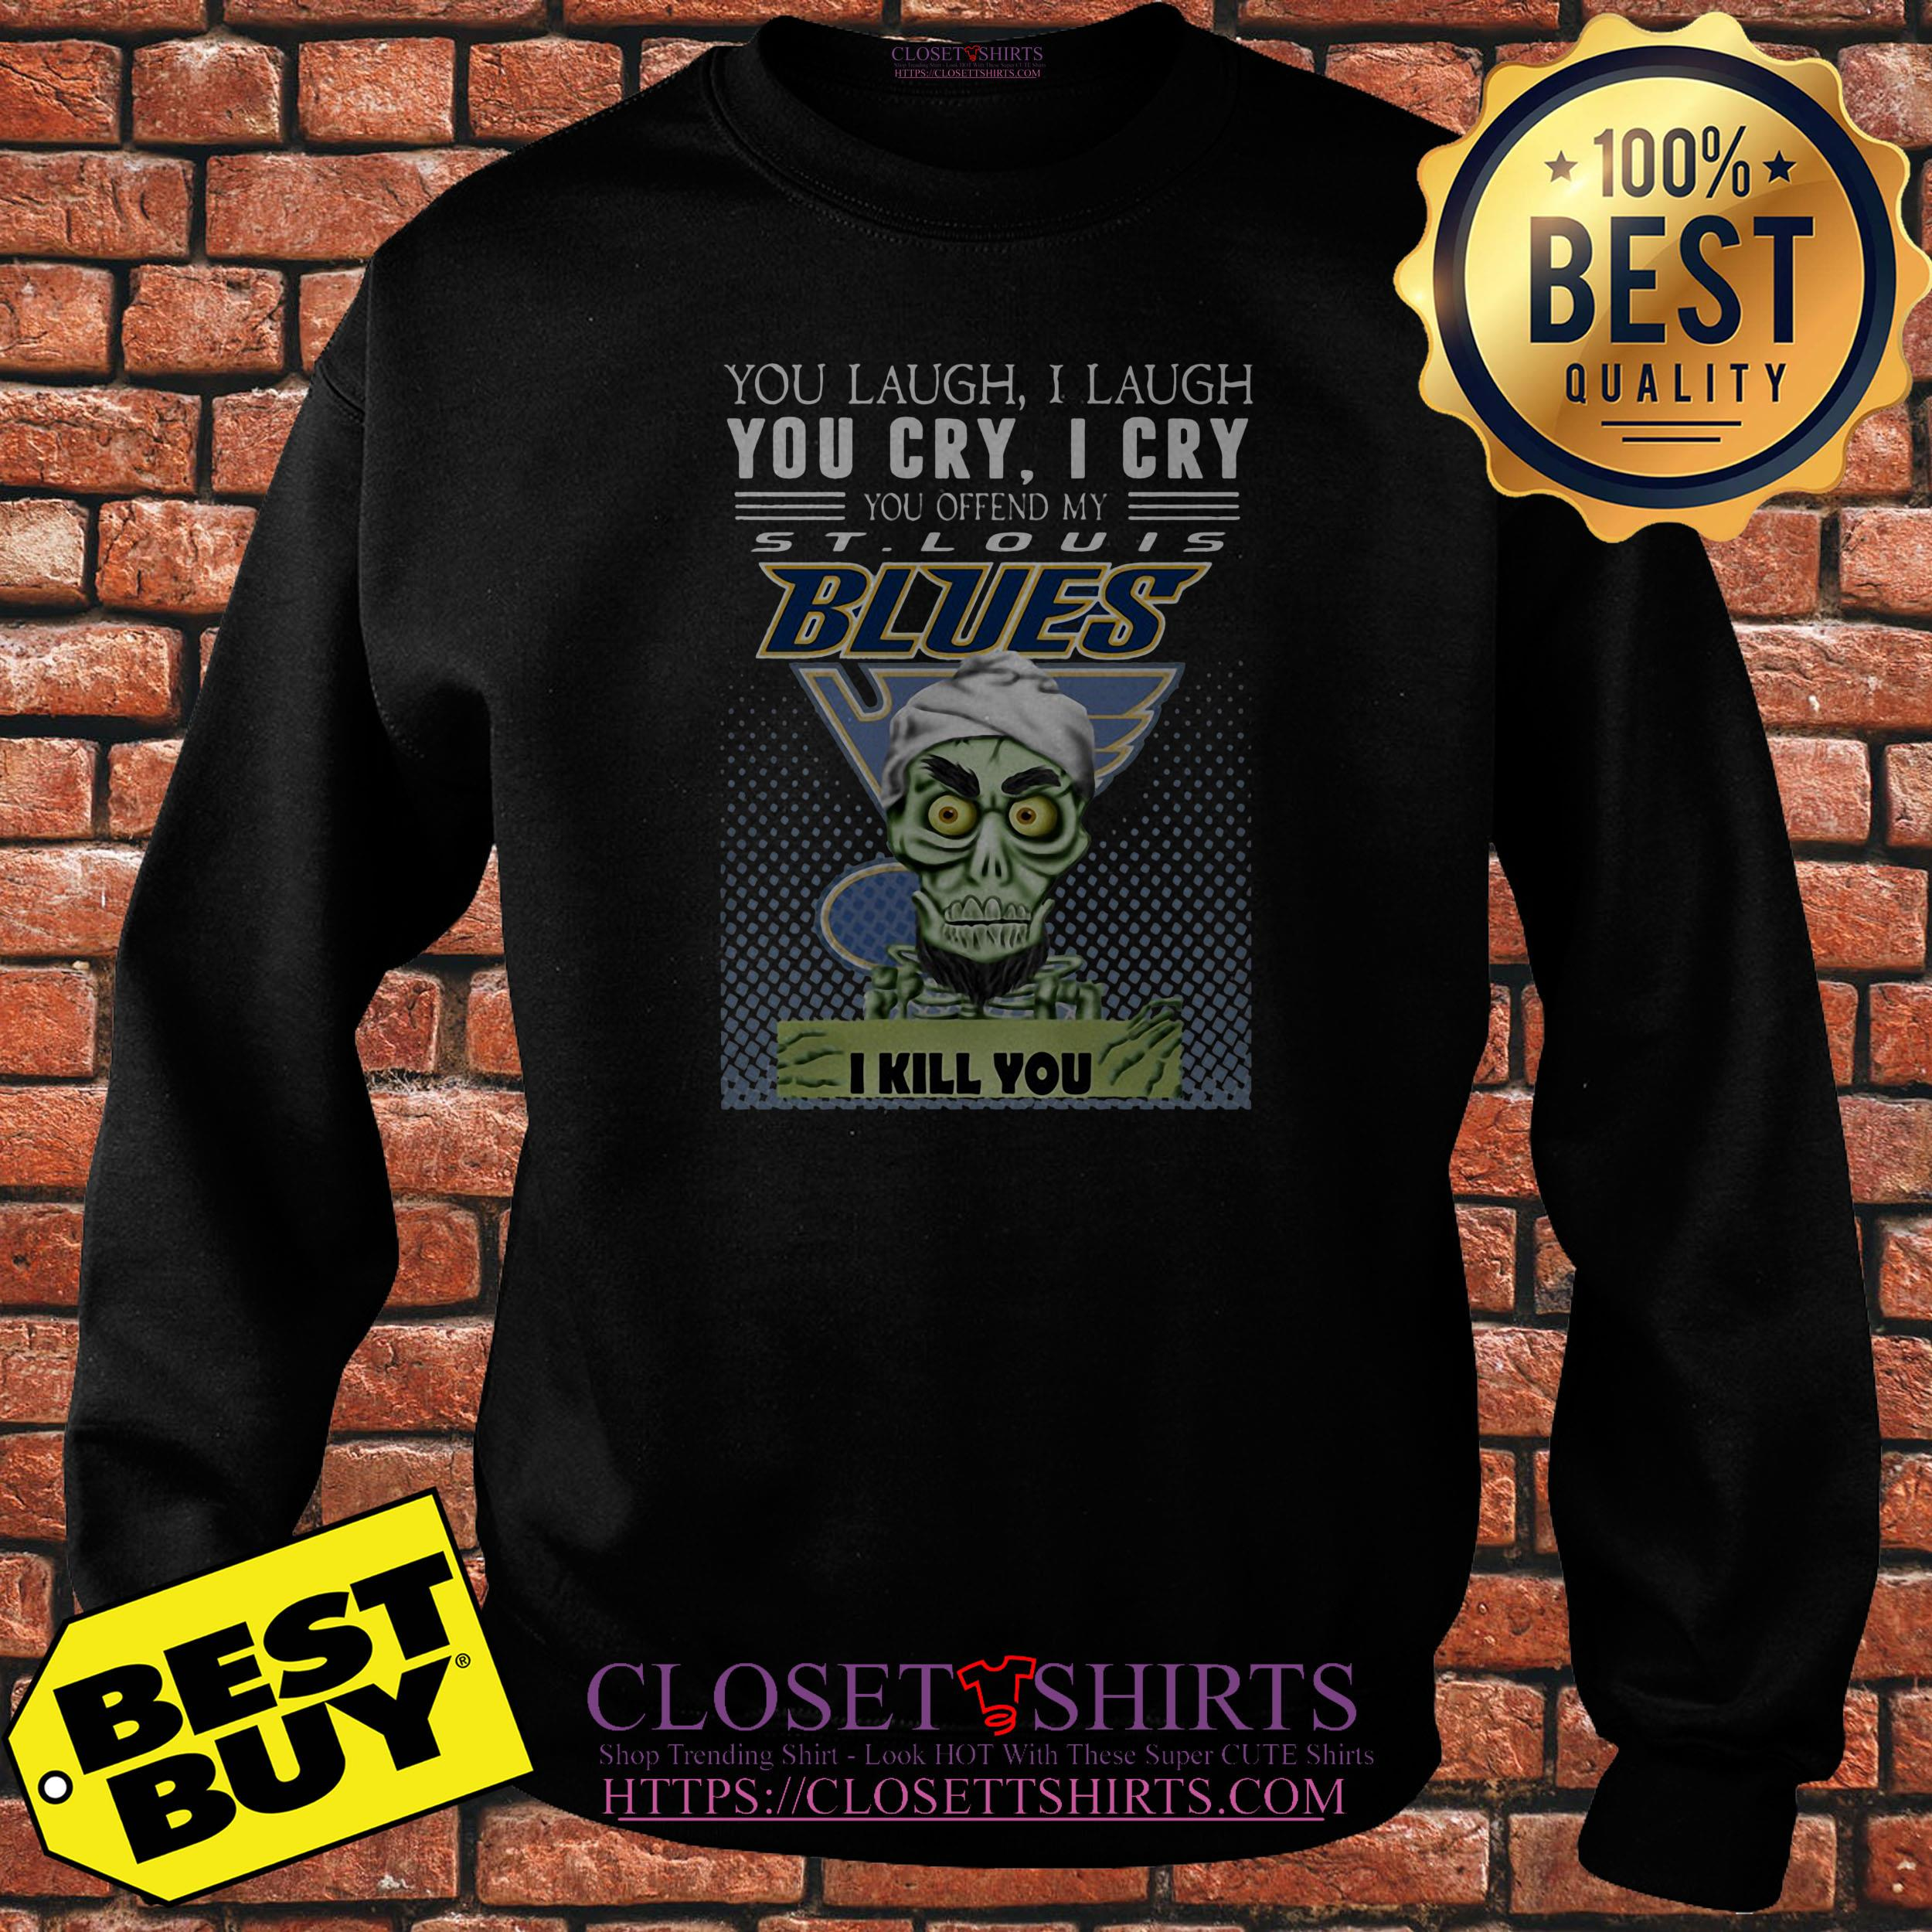 Jeff Dunham You Laugh I Laugh You Cry Offend My St Louis Blues I Kill You Sweatshirt